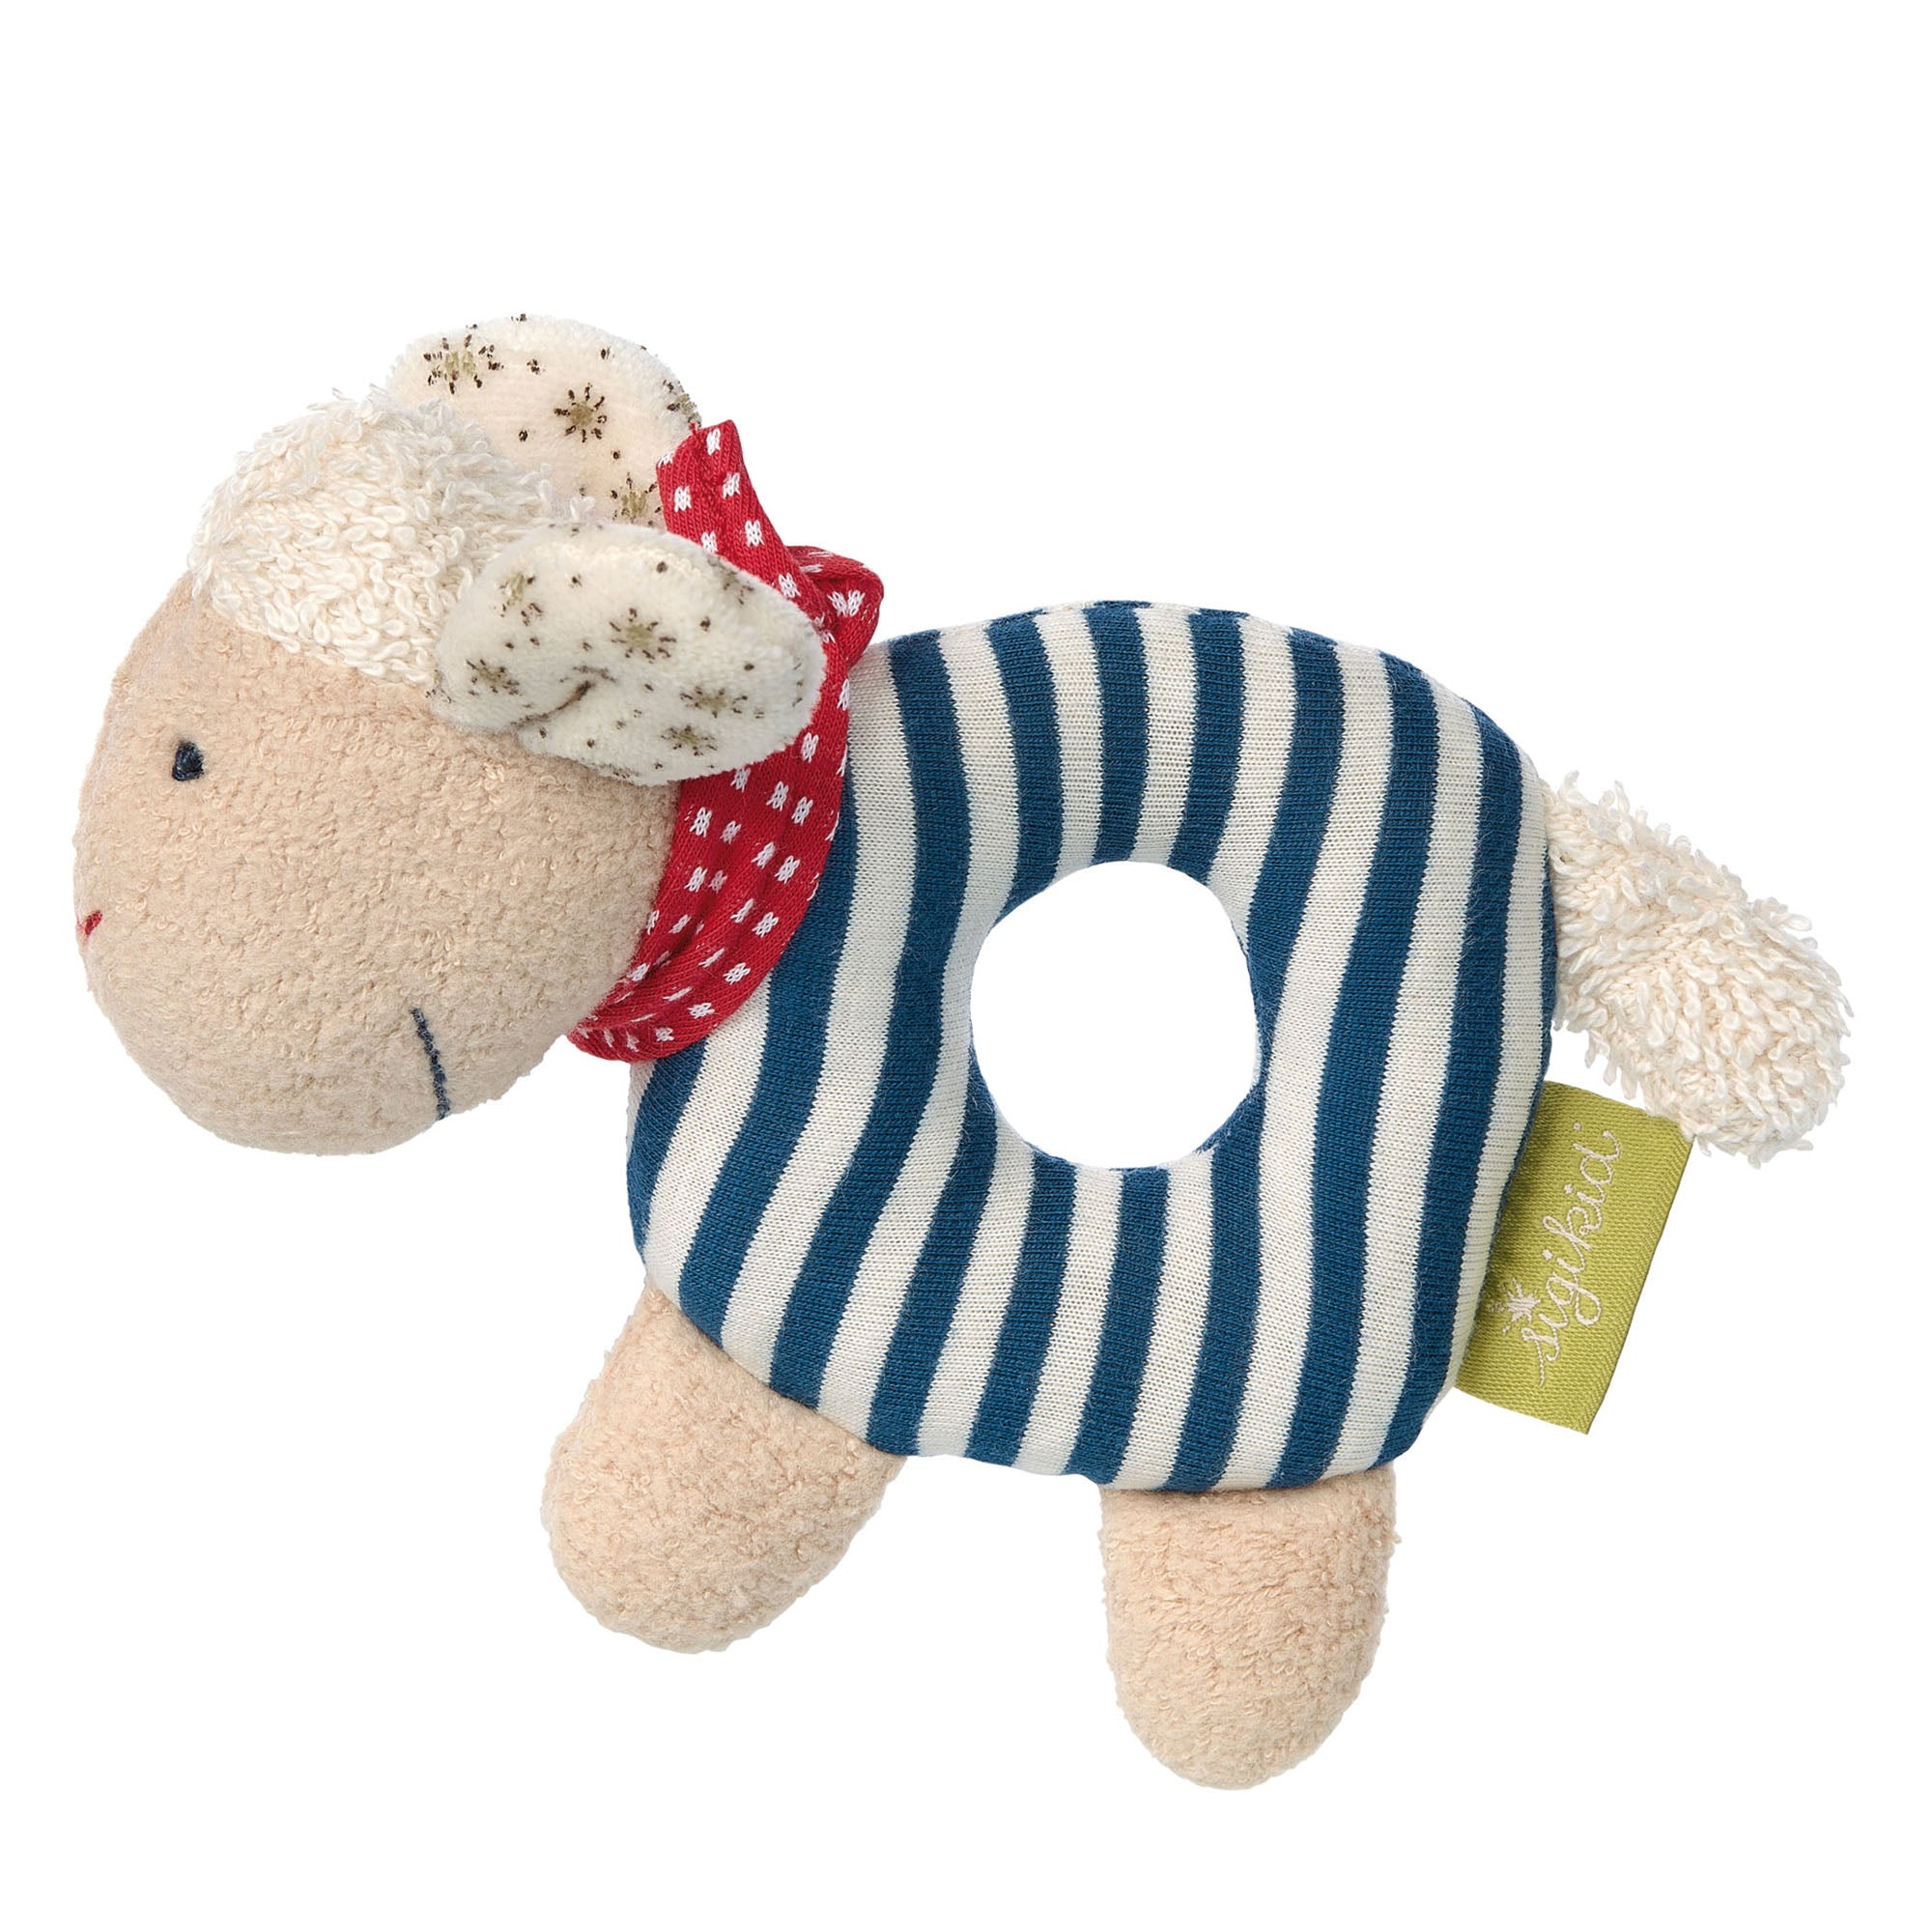 Sigikid Organic Sheep Rattle